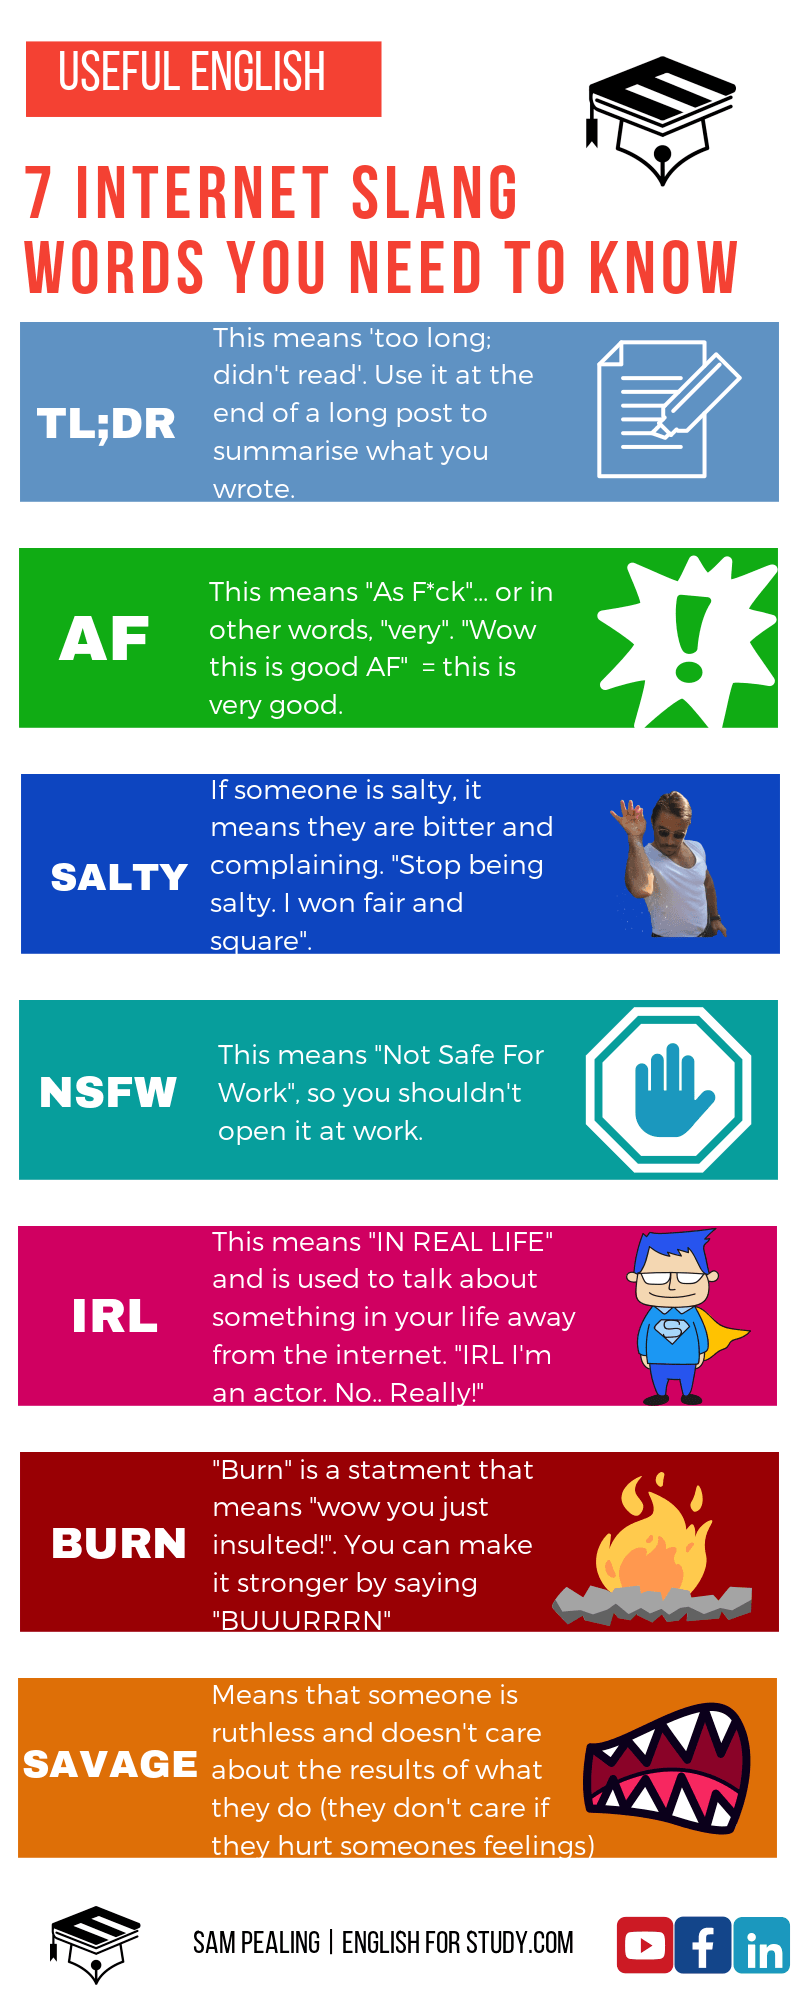 Internet slang meaning